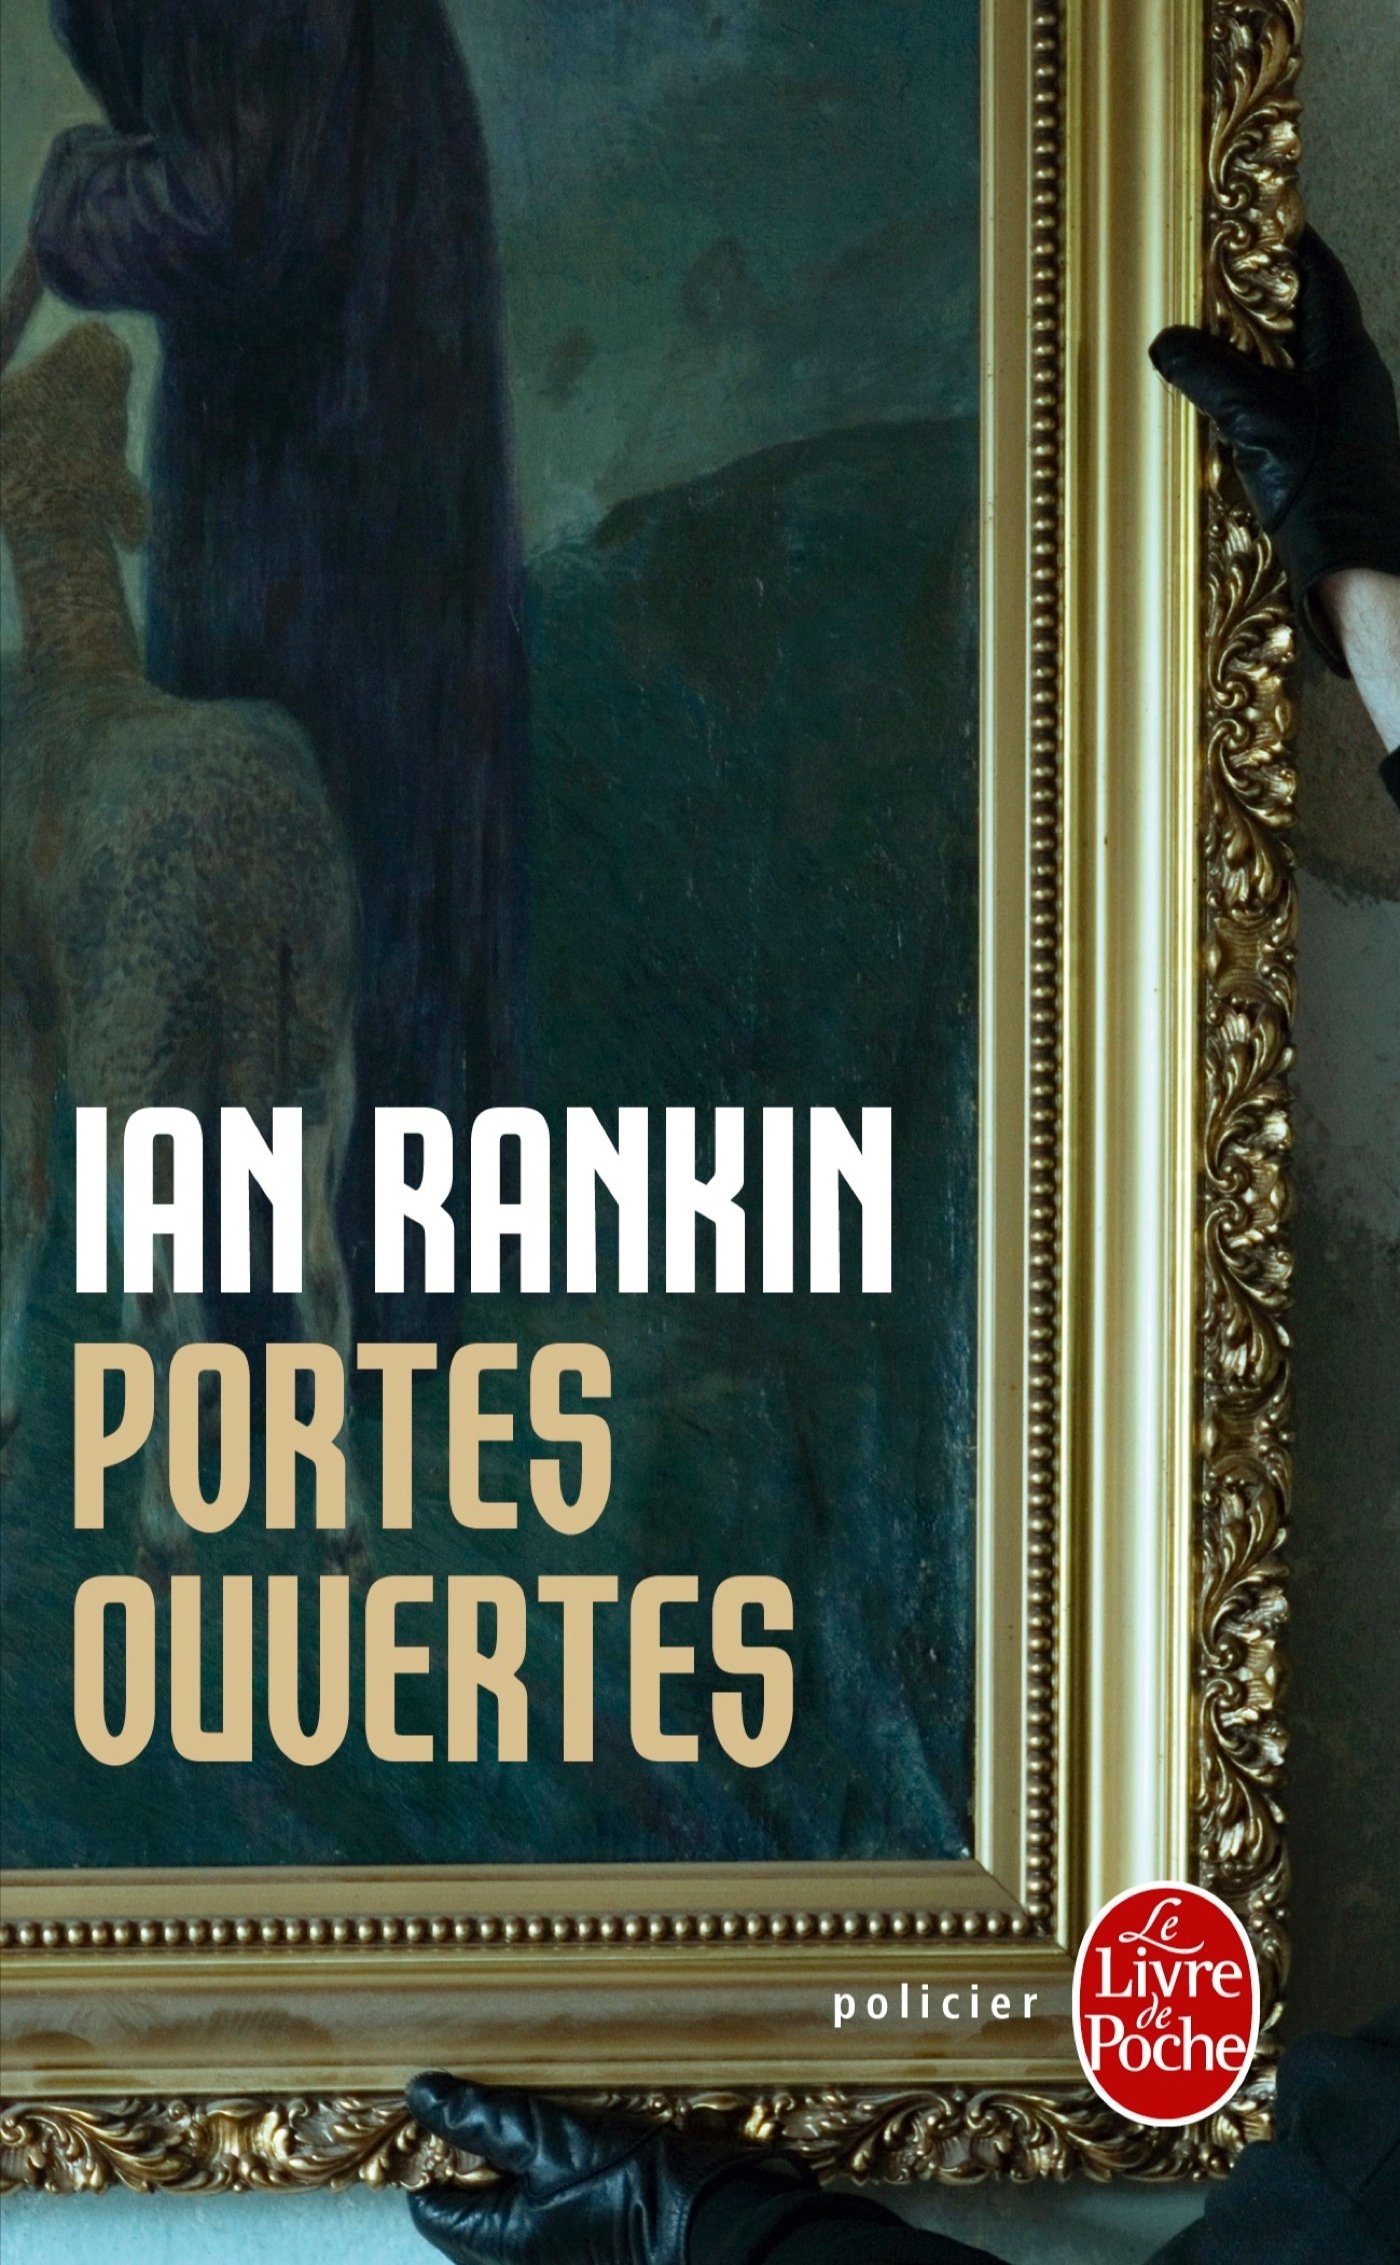 Portes Ouvertes Ian Rankin 9782253173601 Amazon Com Books